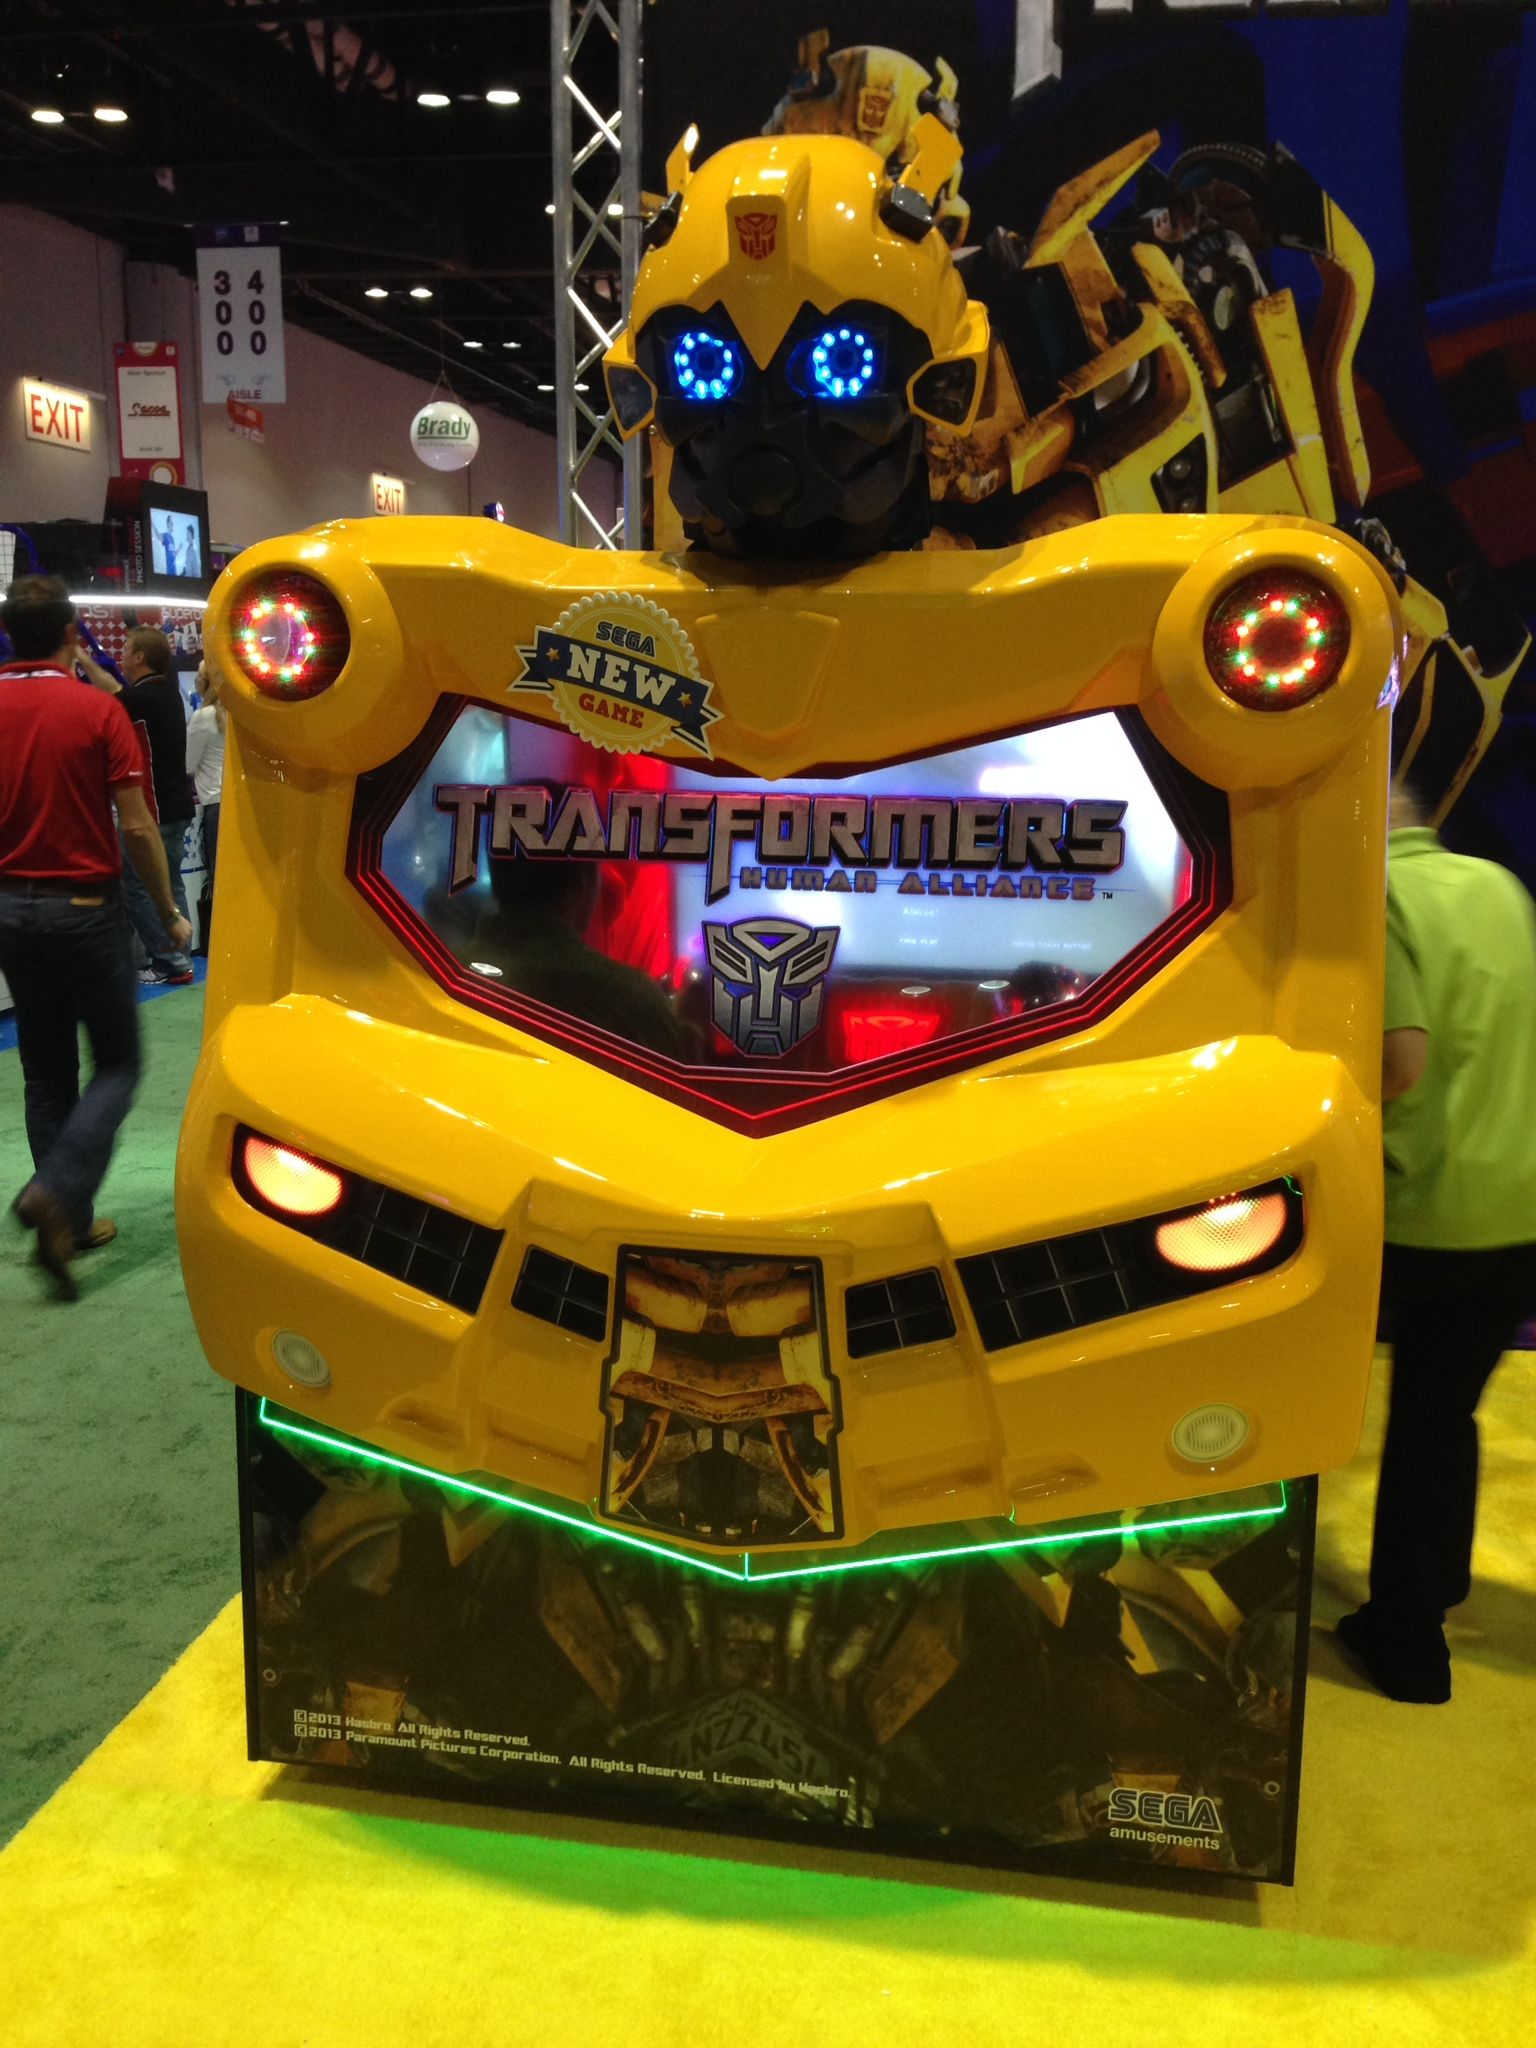 Check out this brand new Transformers game! Coming soon to